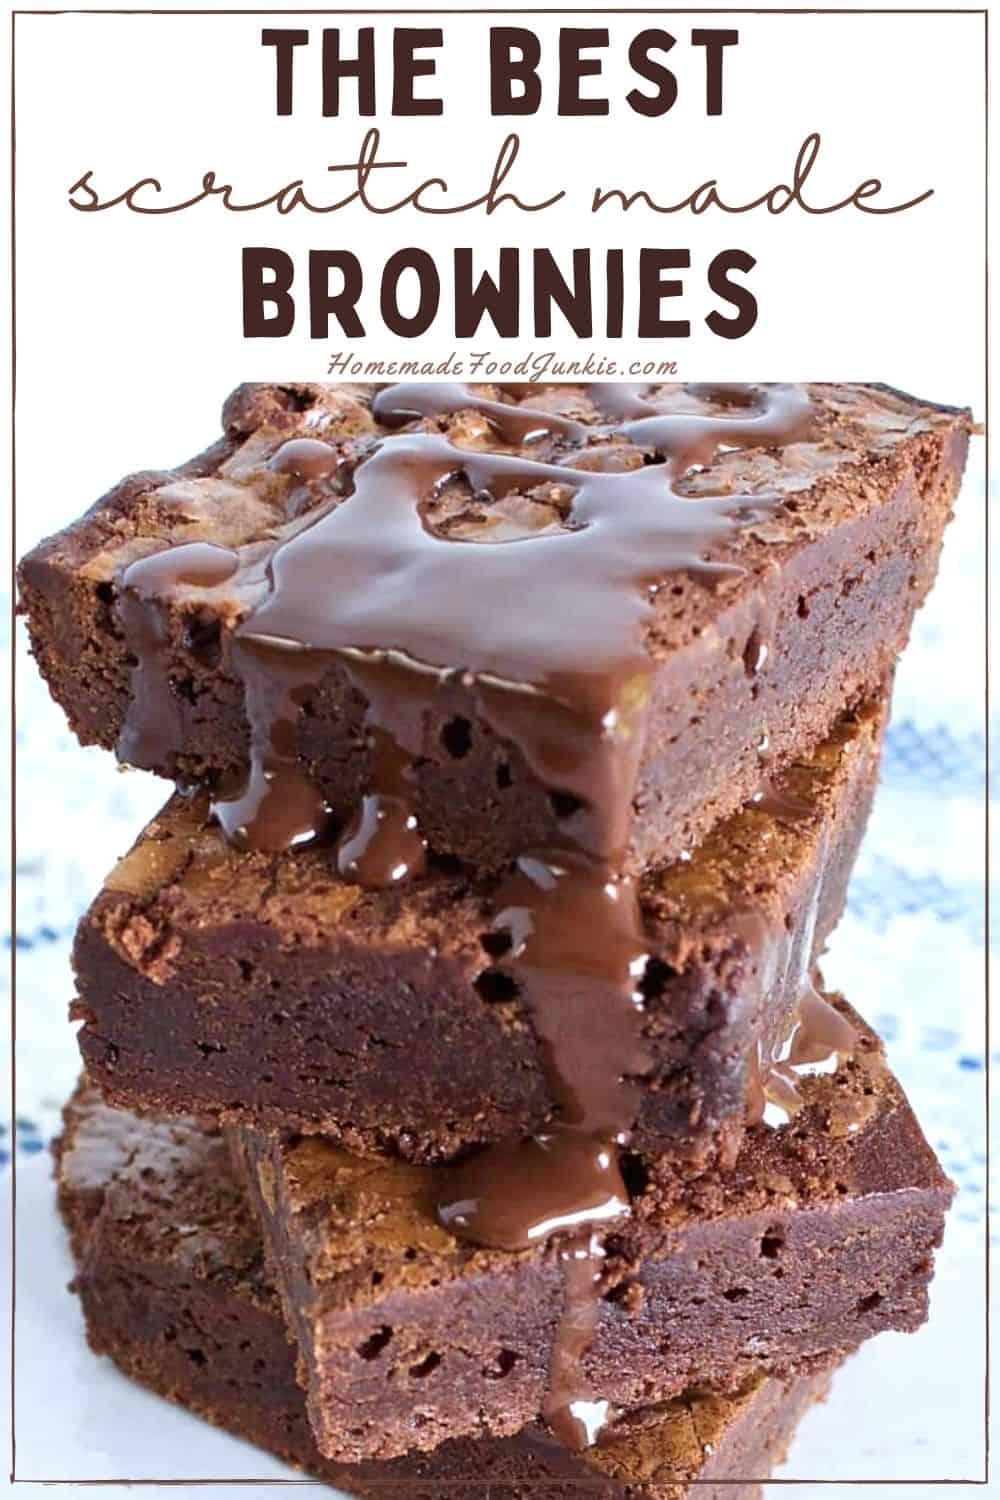 The best scratch made brownies-pin image